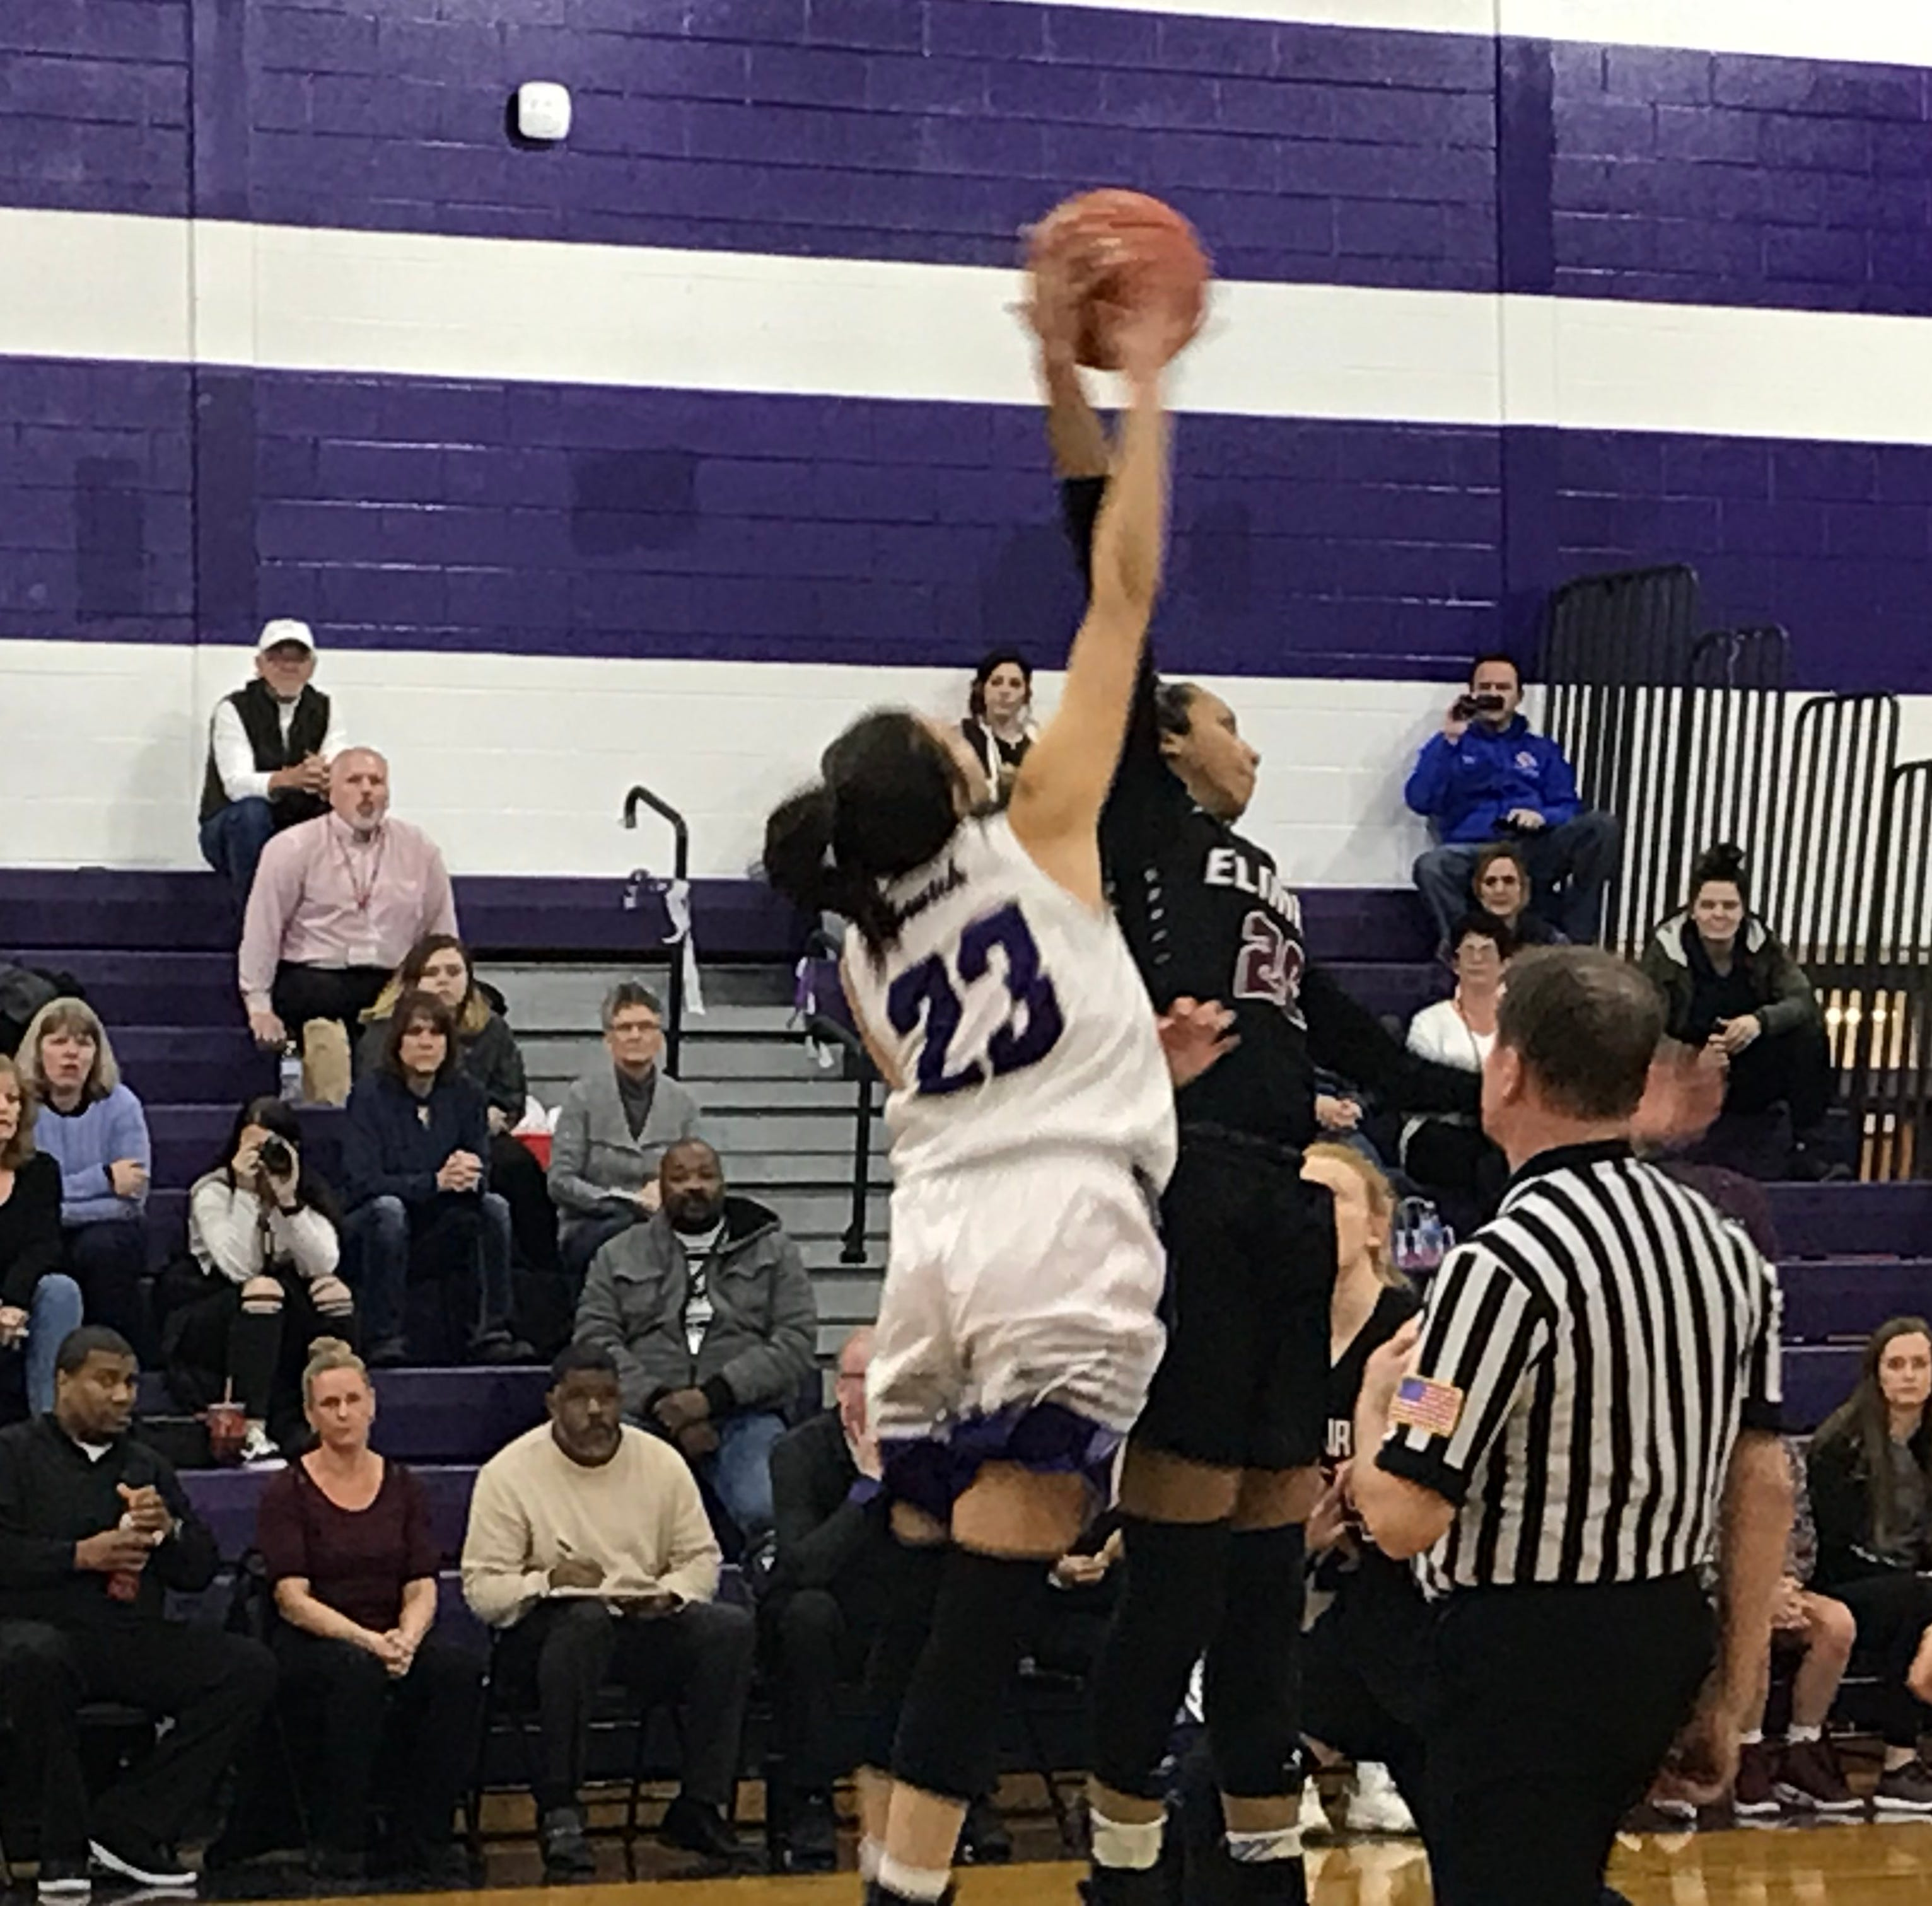 Elmira's Zaria DeMember-Shazer and Norwich's Saige Benedict compete for the opening tip in Wednesday's STAC semifinal at Norwich. The Purple Tornado won, 72-57.